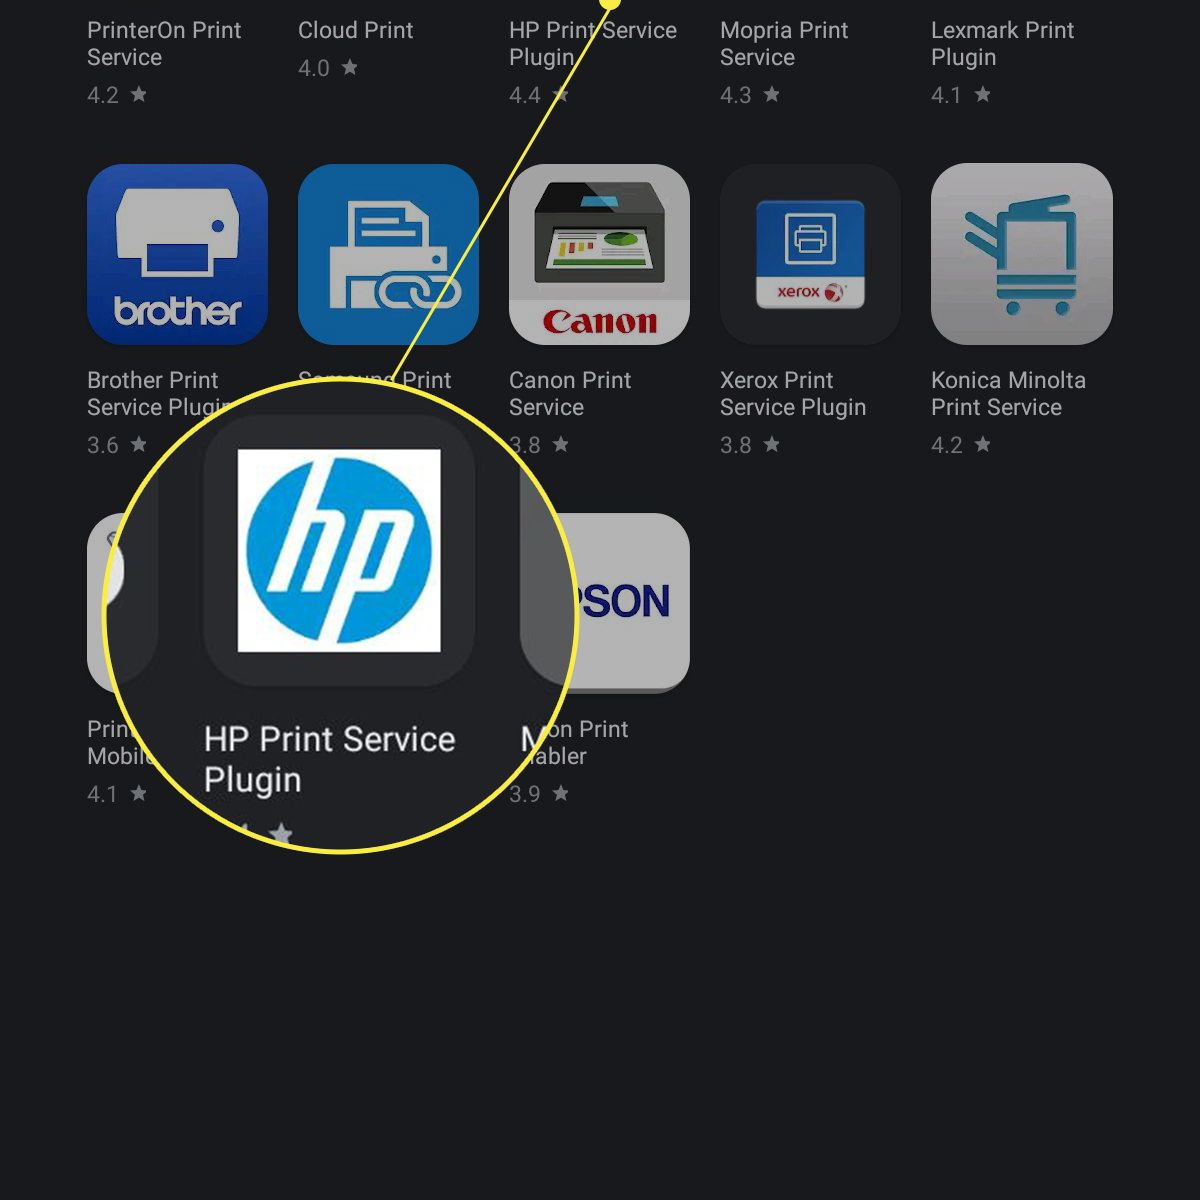 Samsung tablet select printer plugin at Google Play store with the HP plugin highlighted